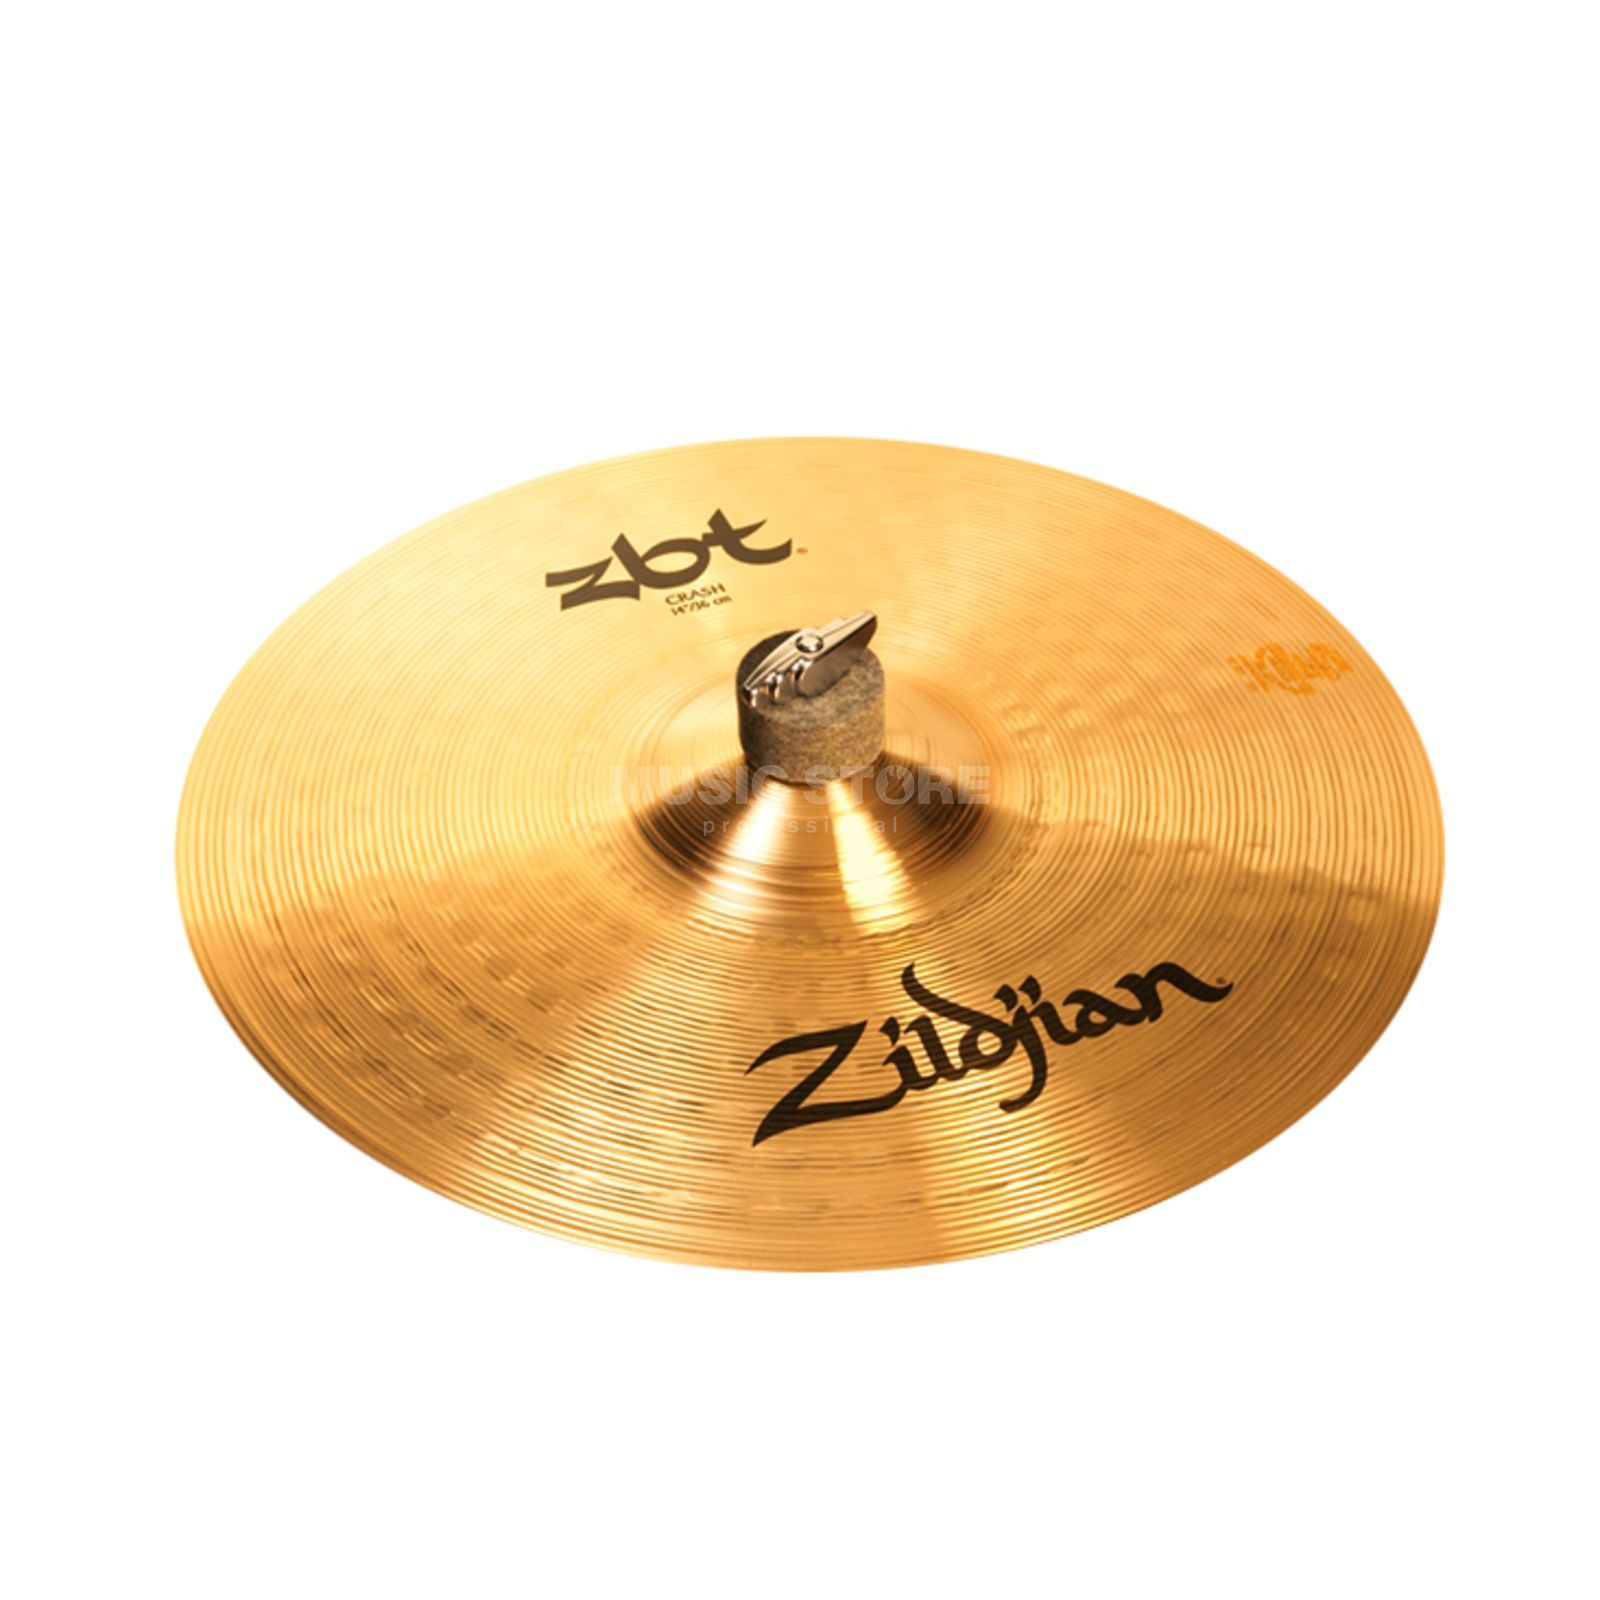 "Zildjian ZBT Crash 14"" Brilliant Finish Produktbild"